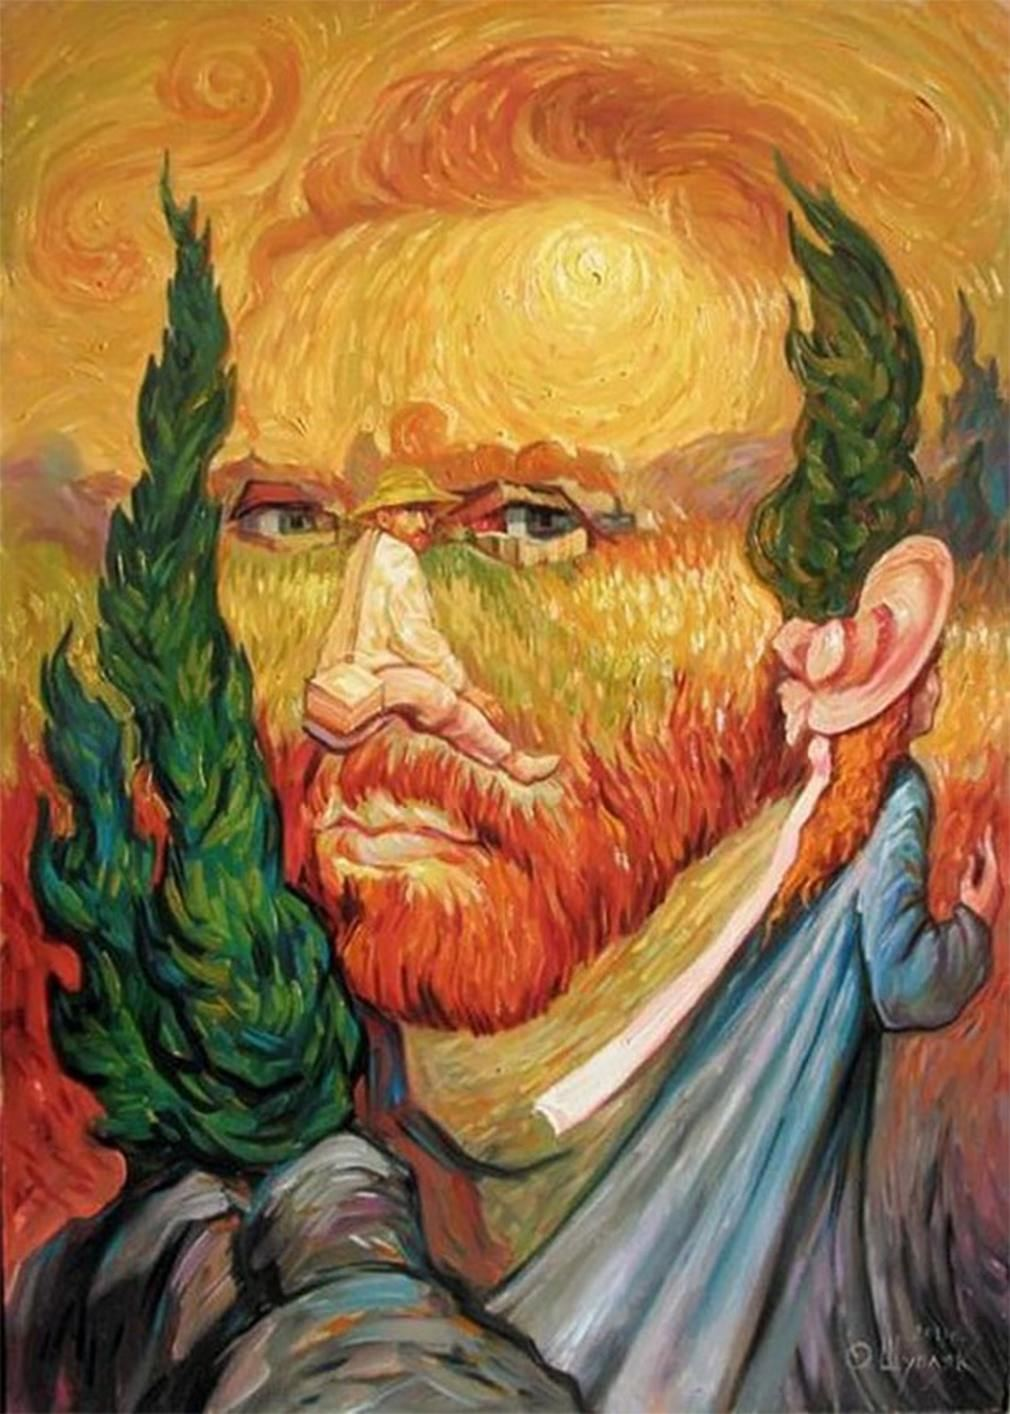 optical illusion paintings illusions van gogh painting amazing famous paint artist vincent nature wordlesstech painted gough cool ilusion things awesome